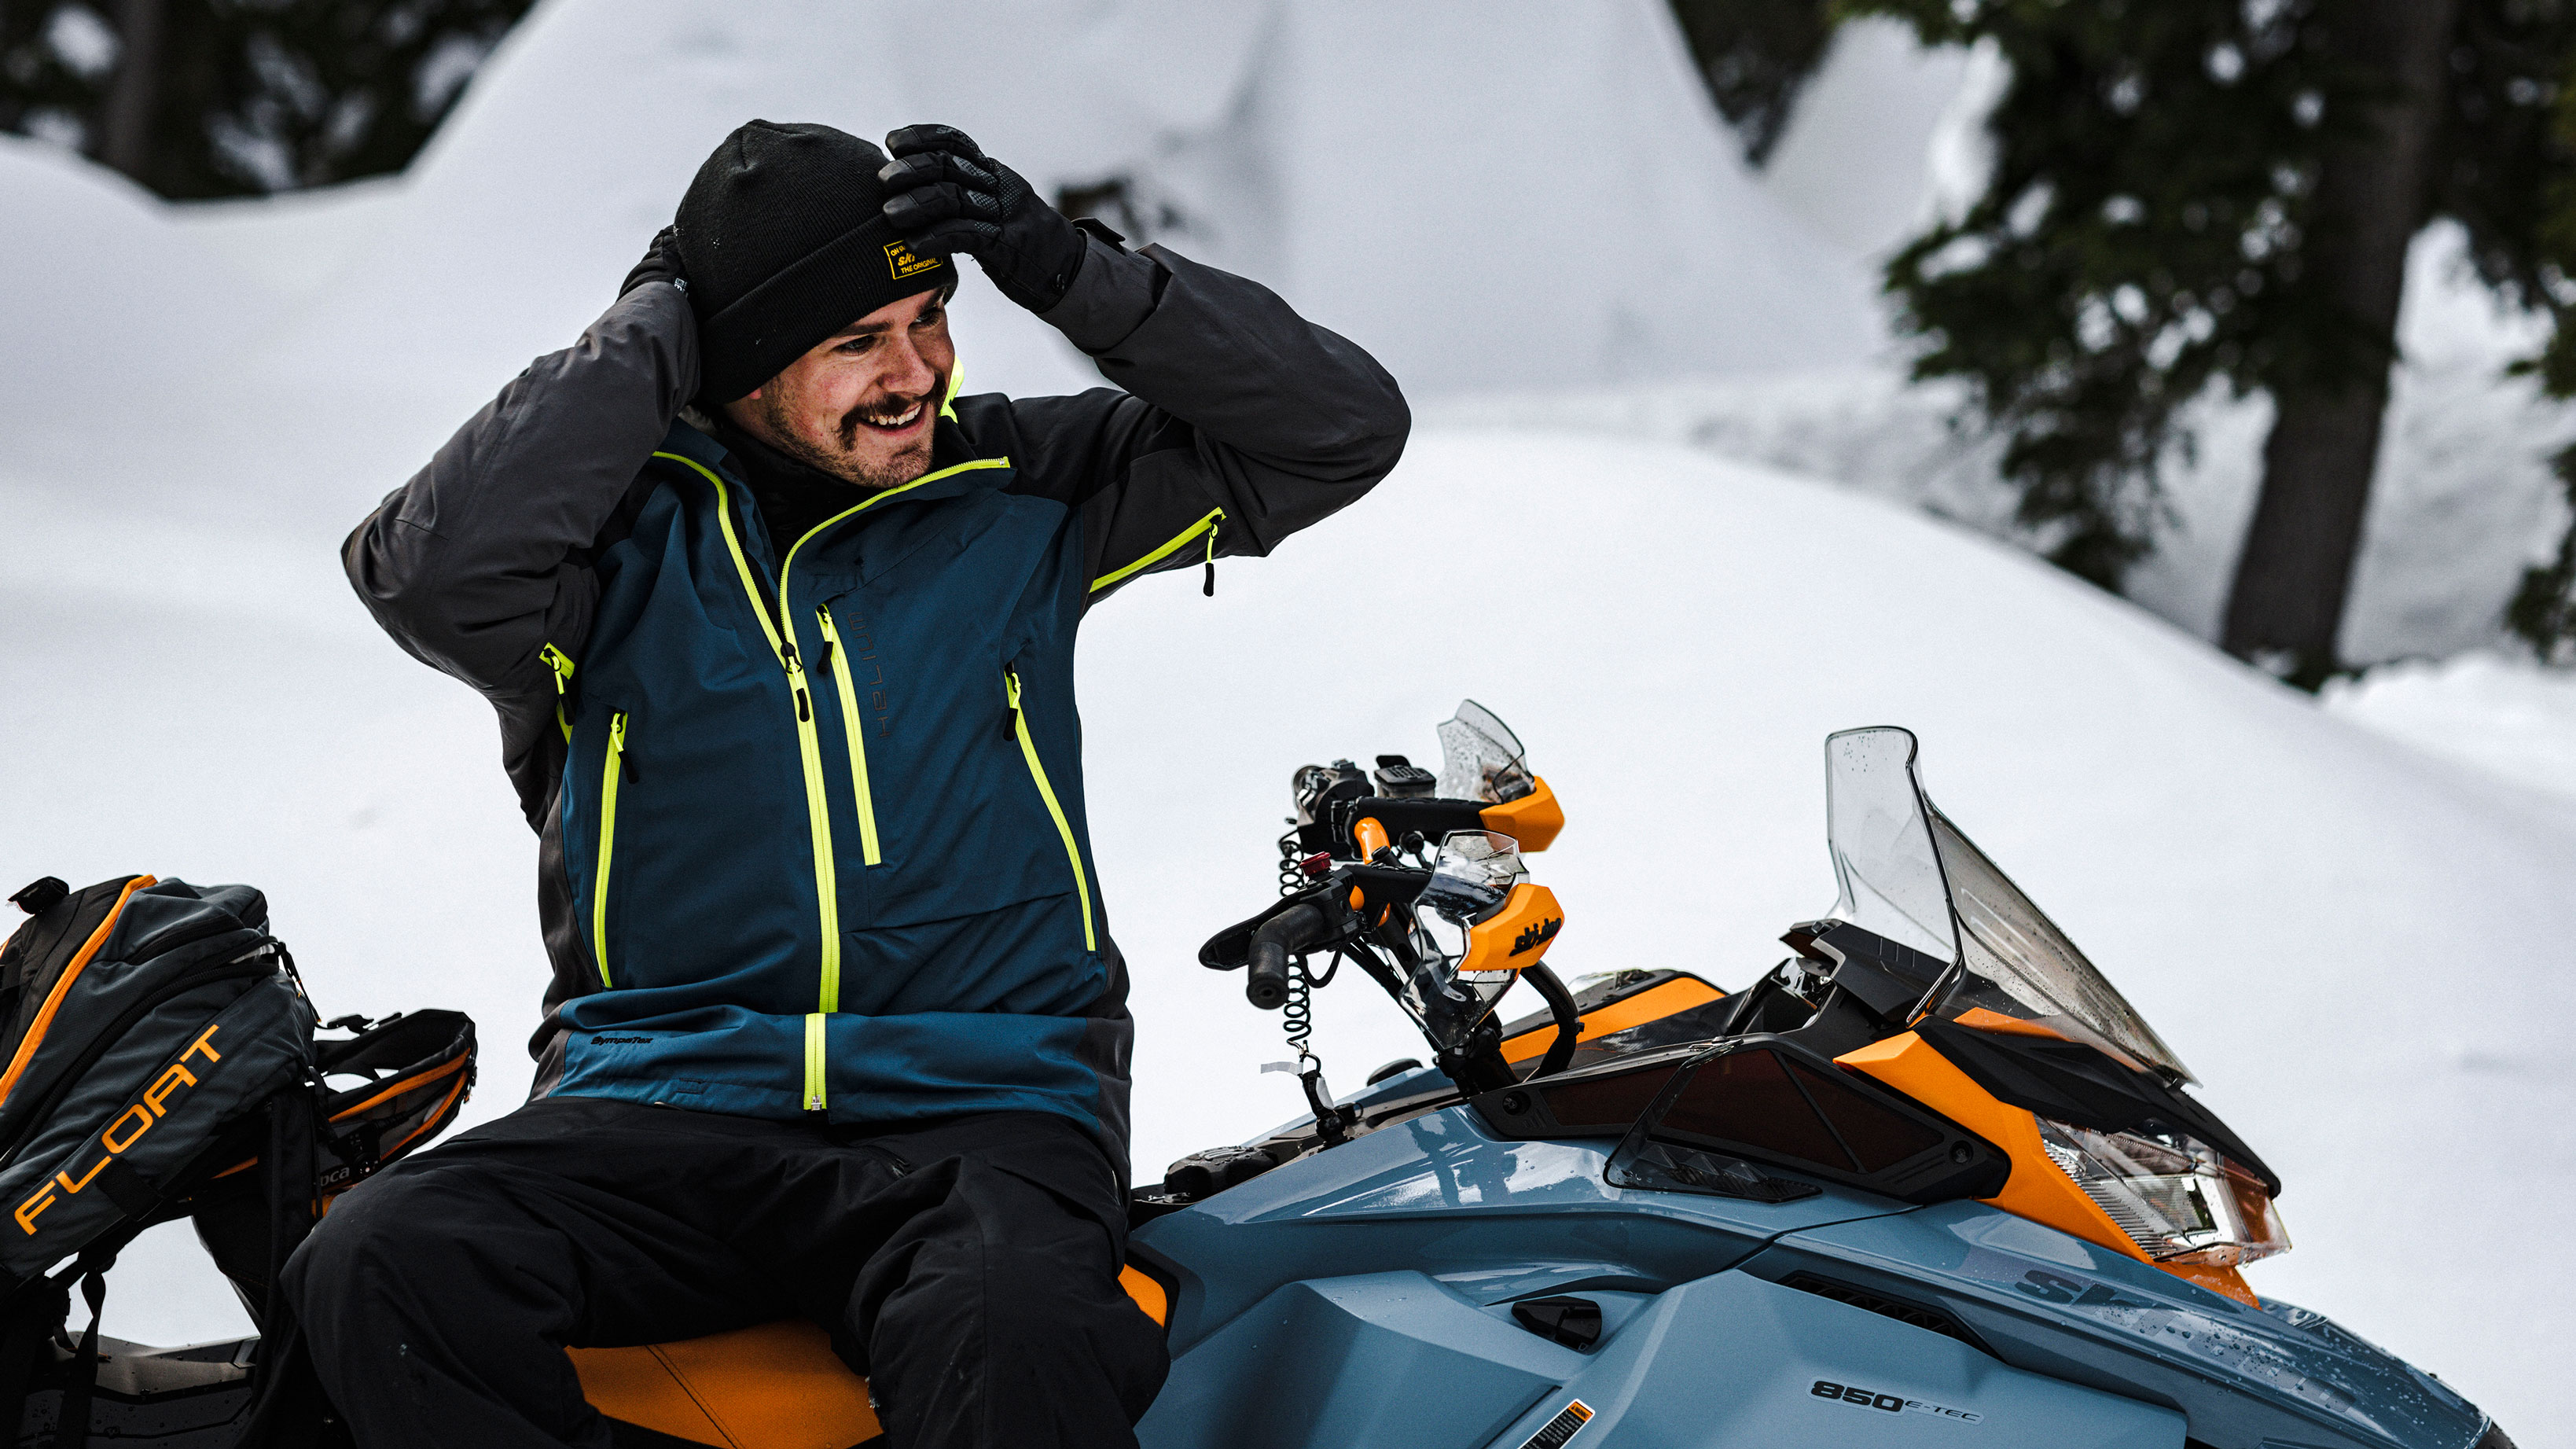 Homme portant une tuque assis sur sa motoneige Ski-Doo Backcountry